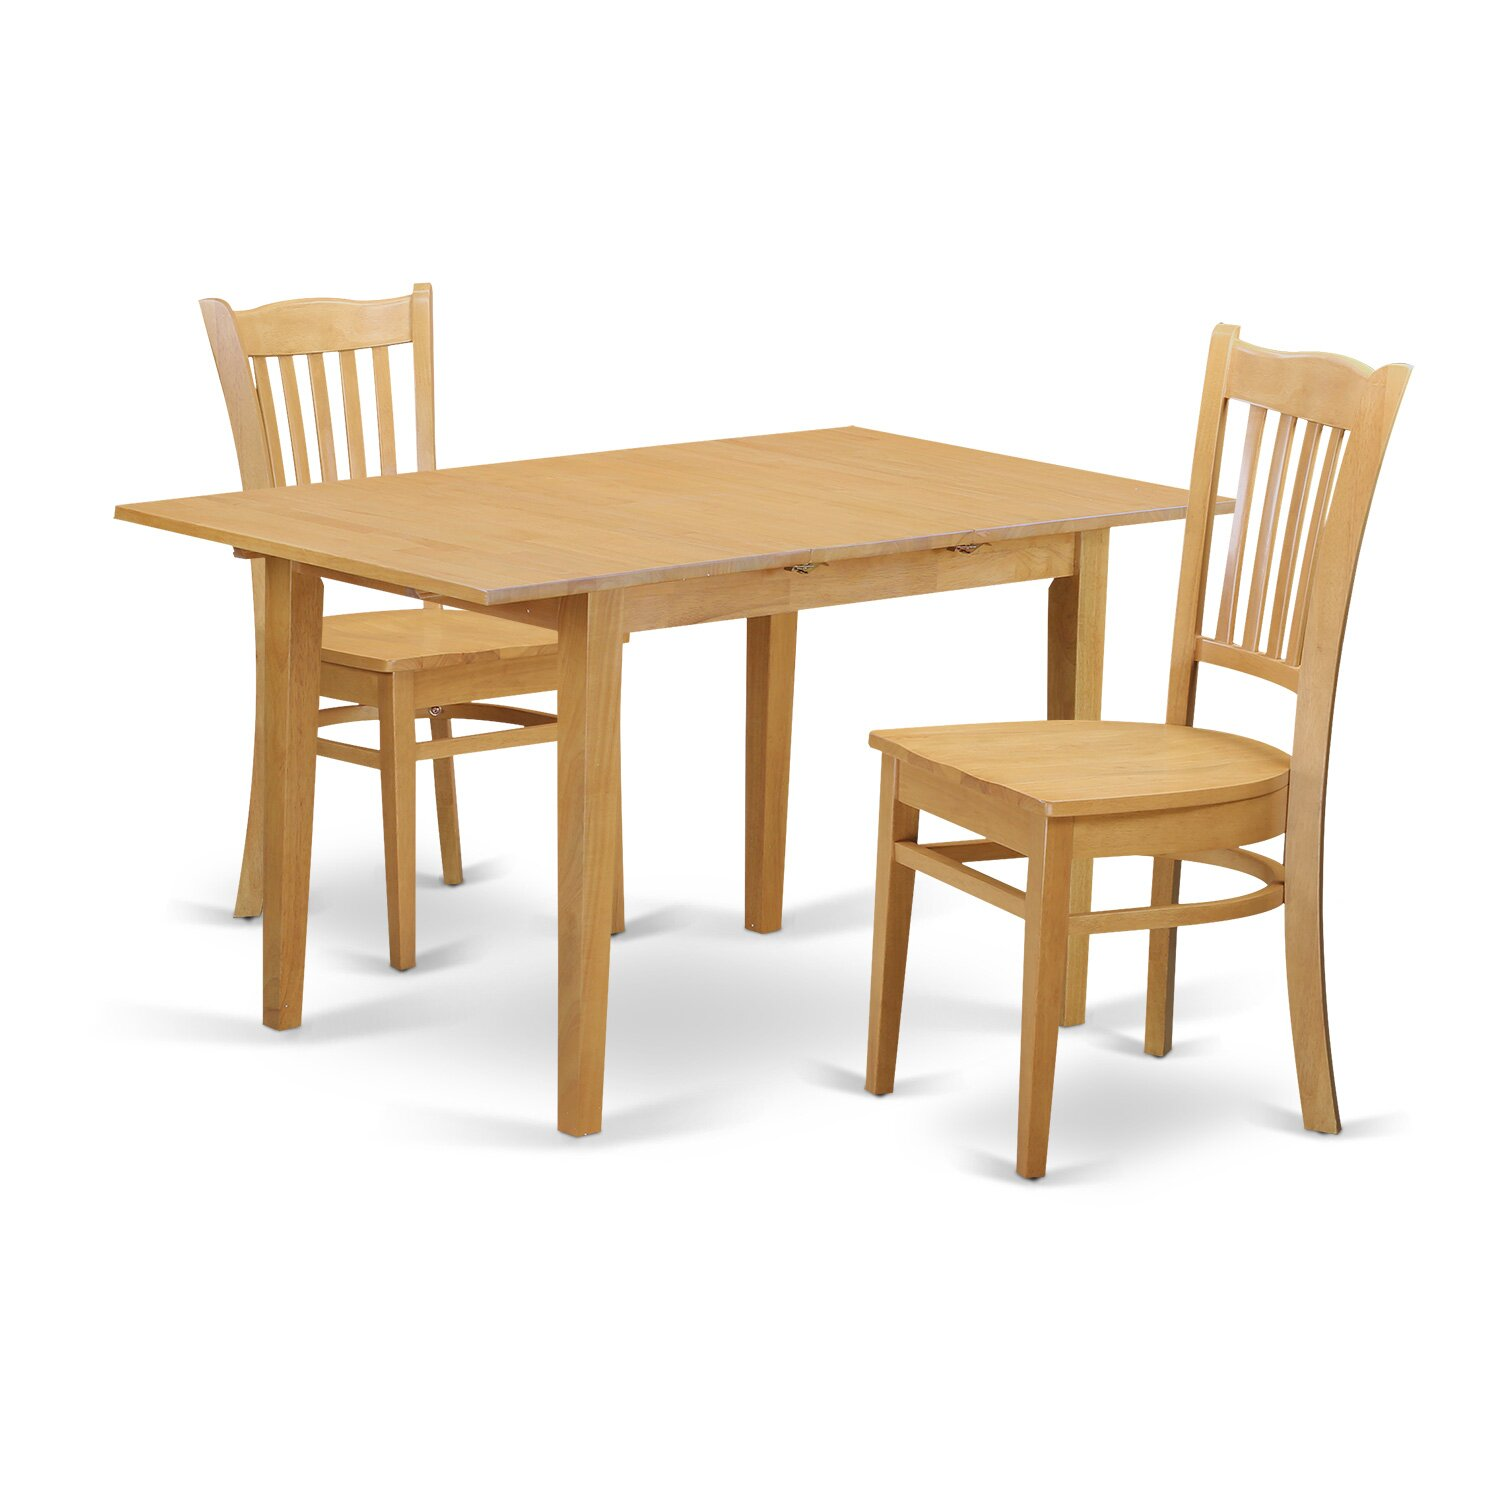 East West Norfolk 3 Piece Dining Set Wayfair